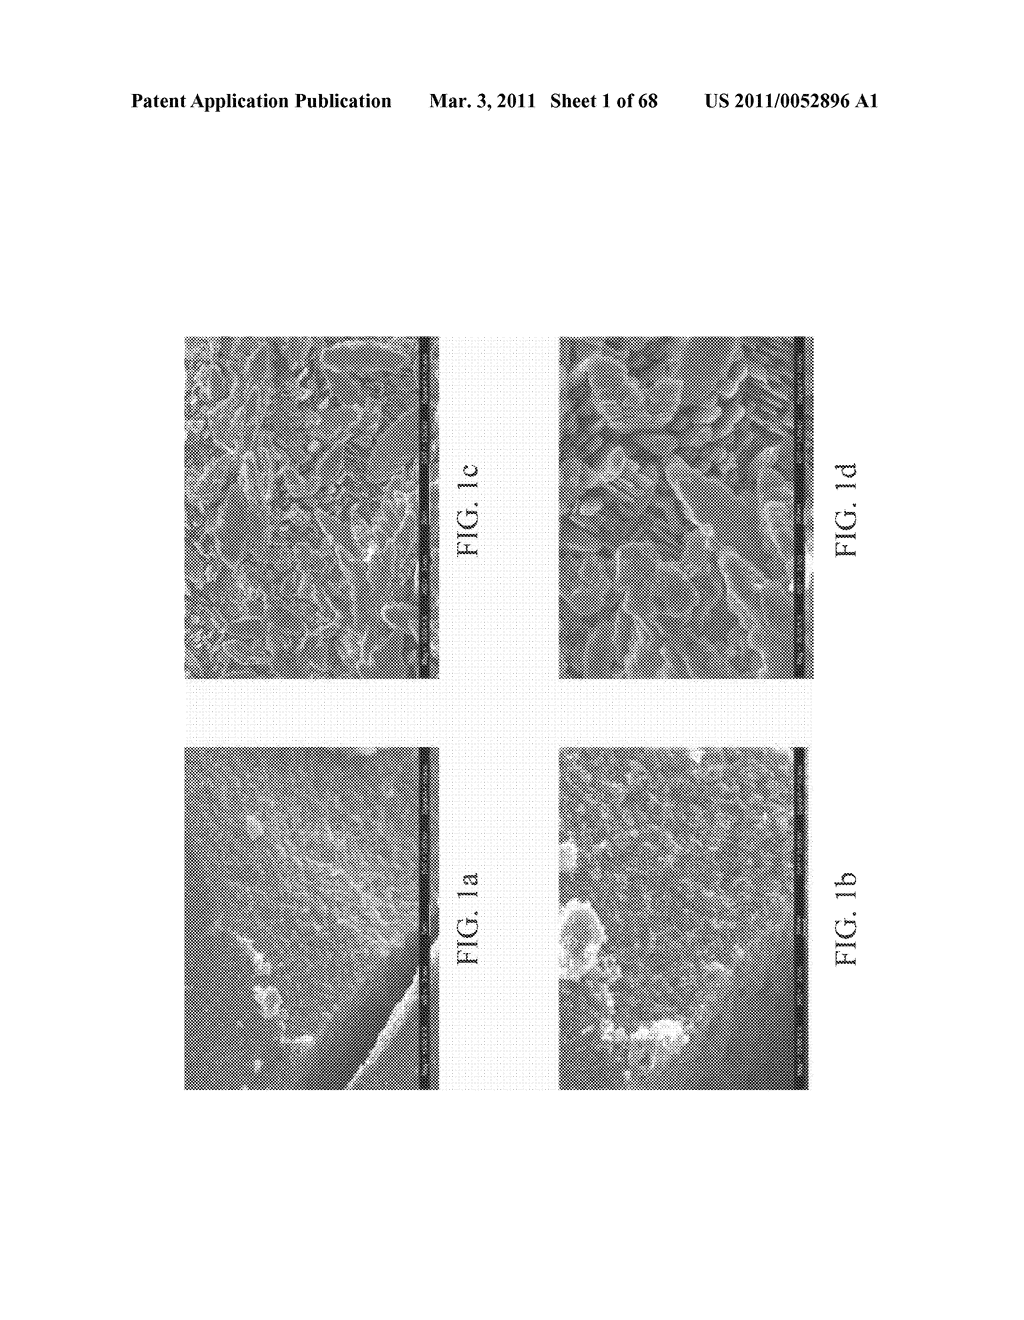 Zinc Oxide and Cobalt Oxide Nanostructures and Methods of Making Thereof - diagram, schematic, and image 02